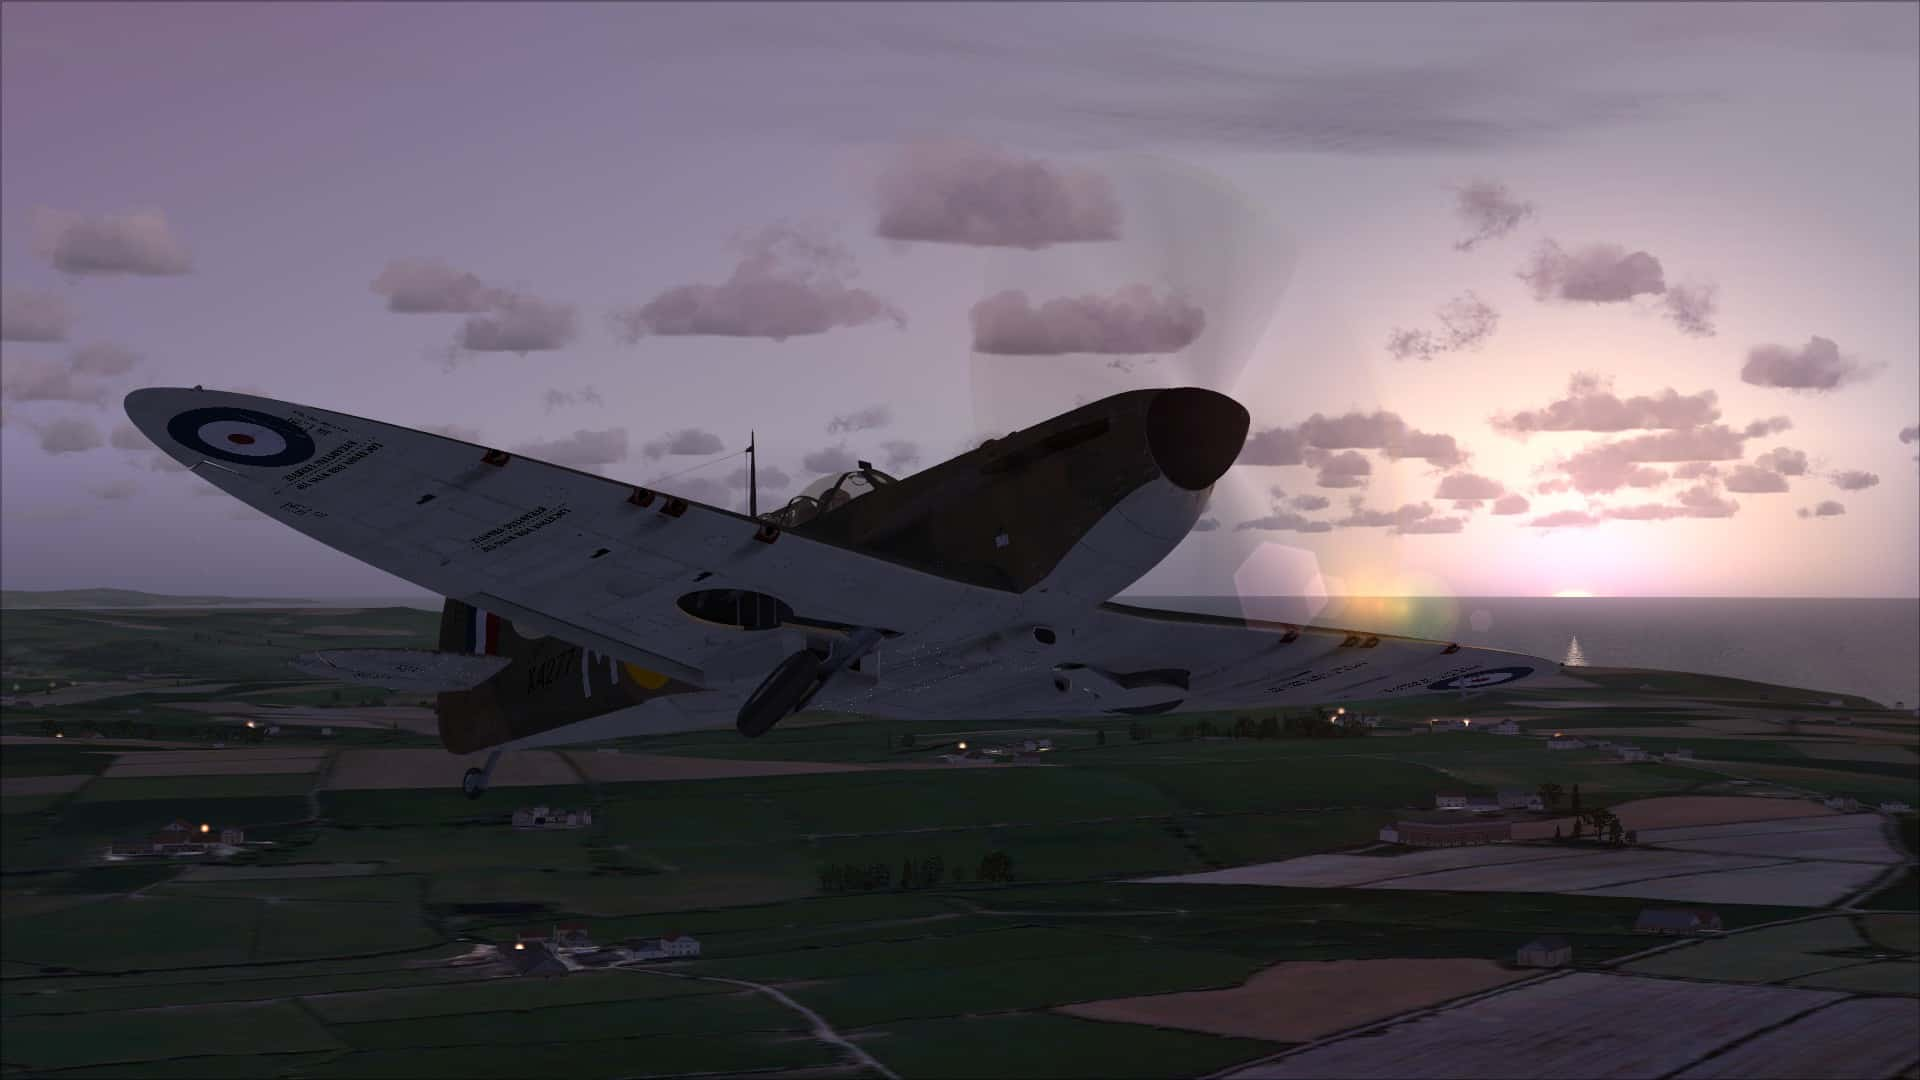 FSX: RJ Mitchell's Masterpiece - Dunkirk Spitfire from Just